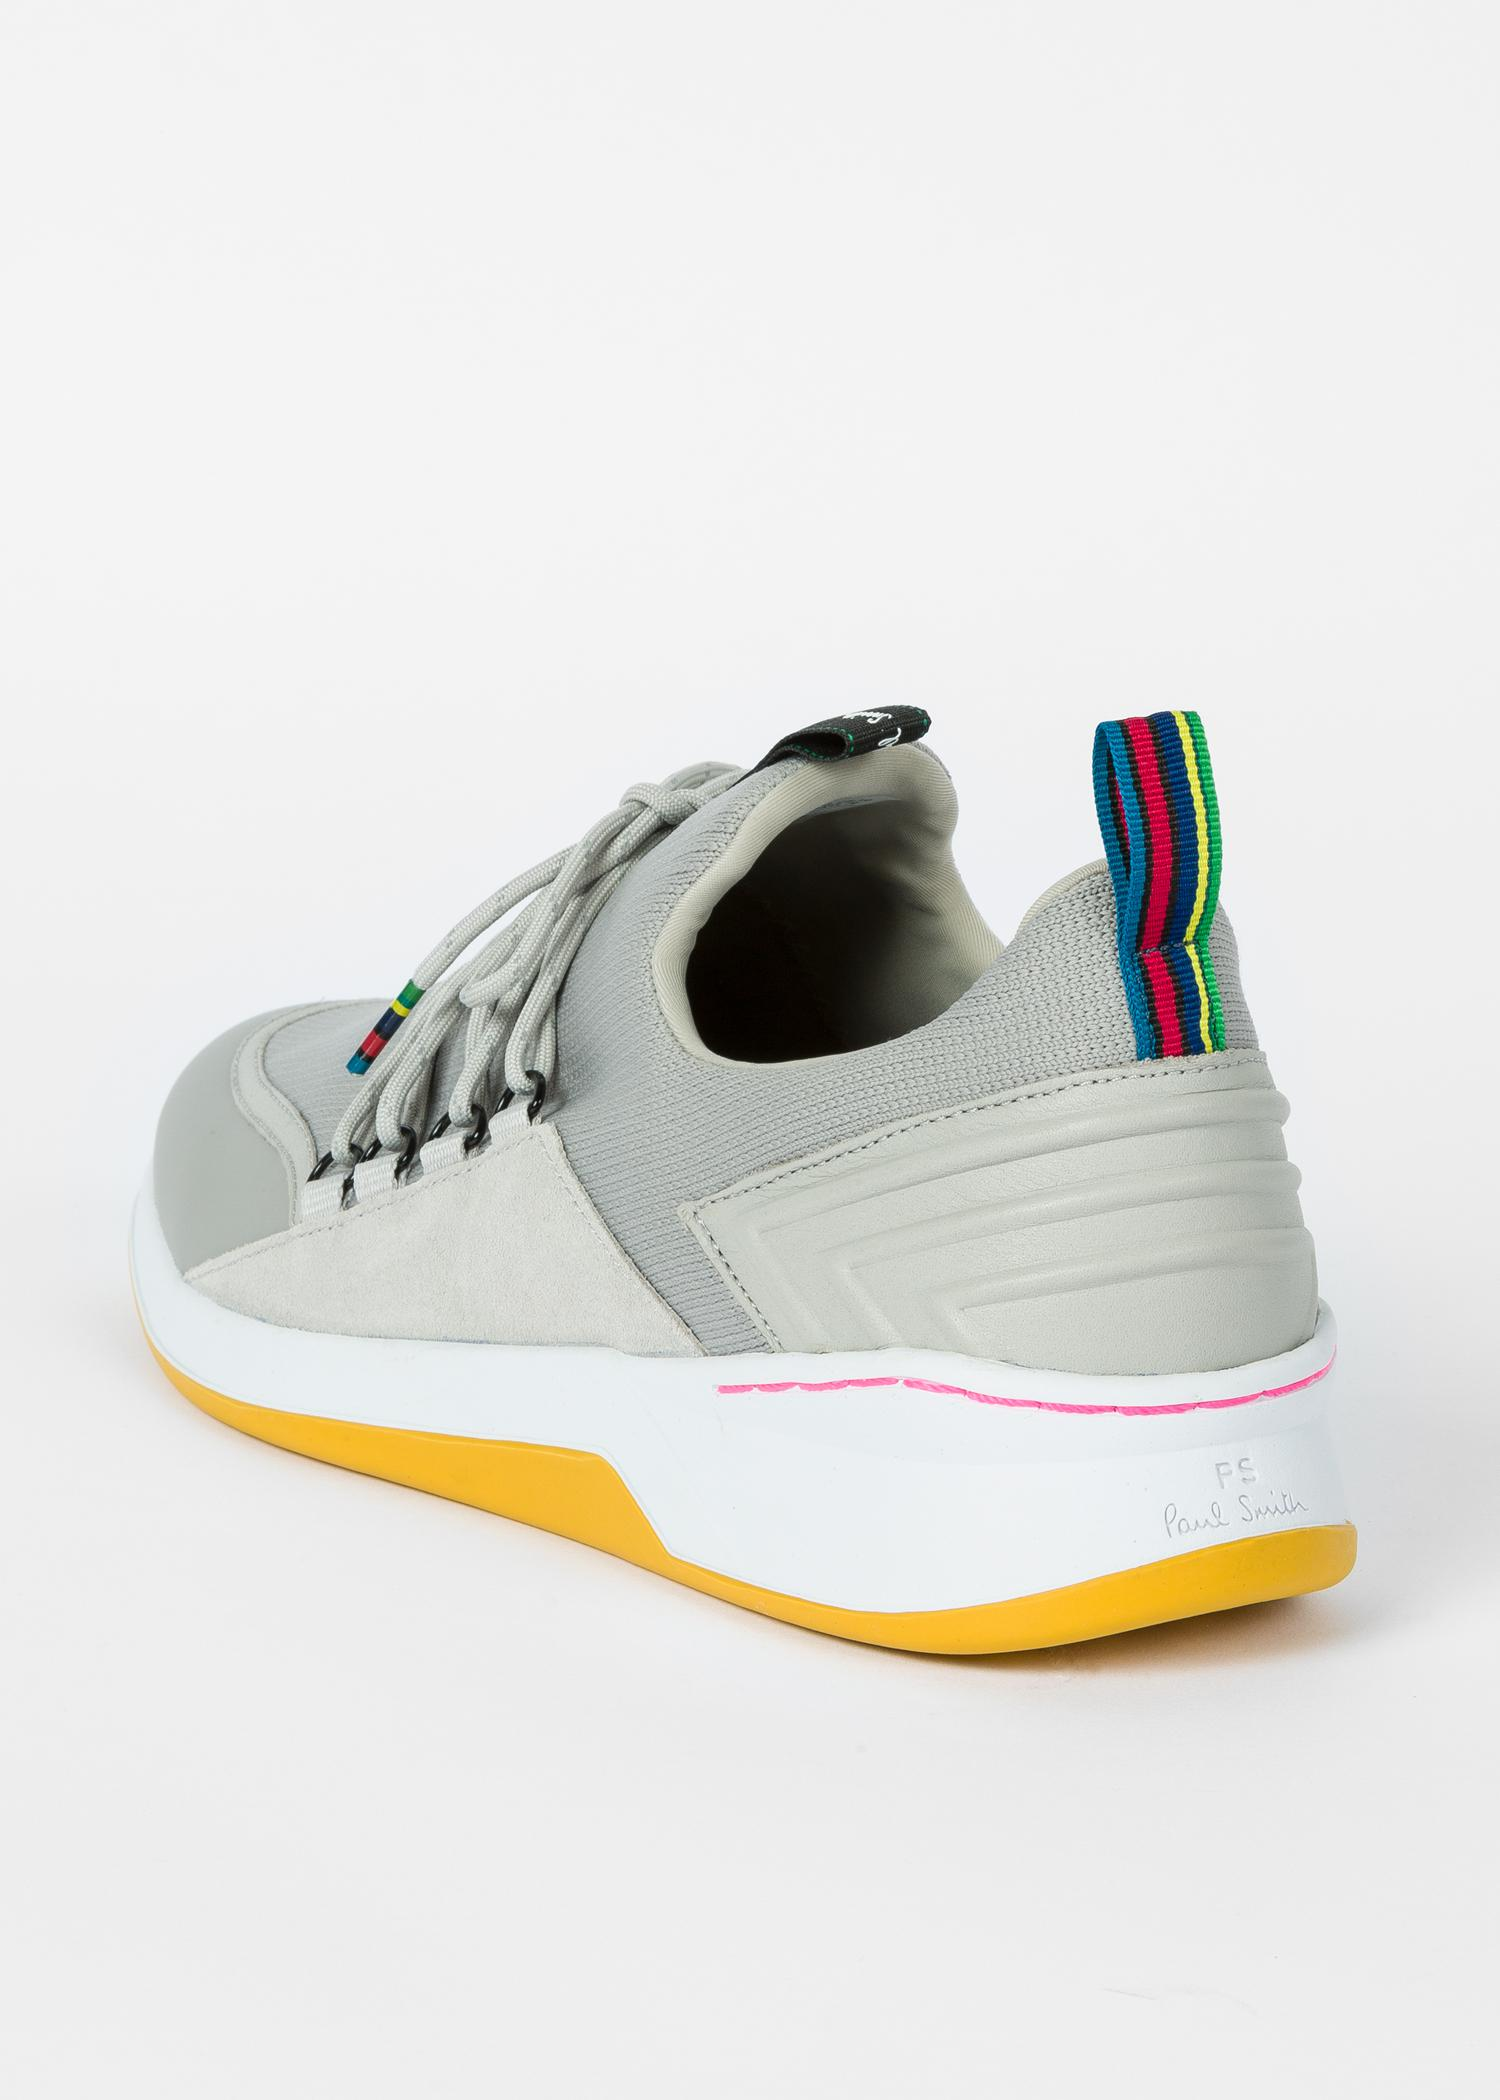 Paul Smith Synthetic Grey 'Jersey' Knitted Trainers in Grey for Men